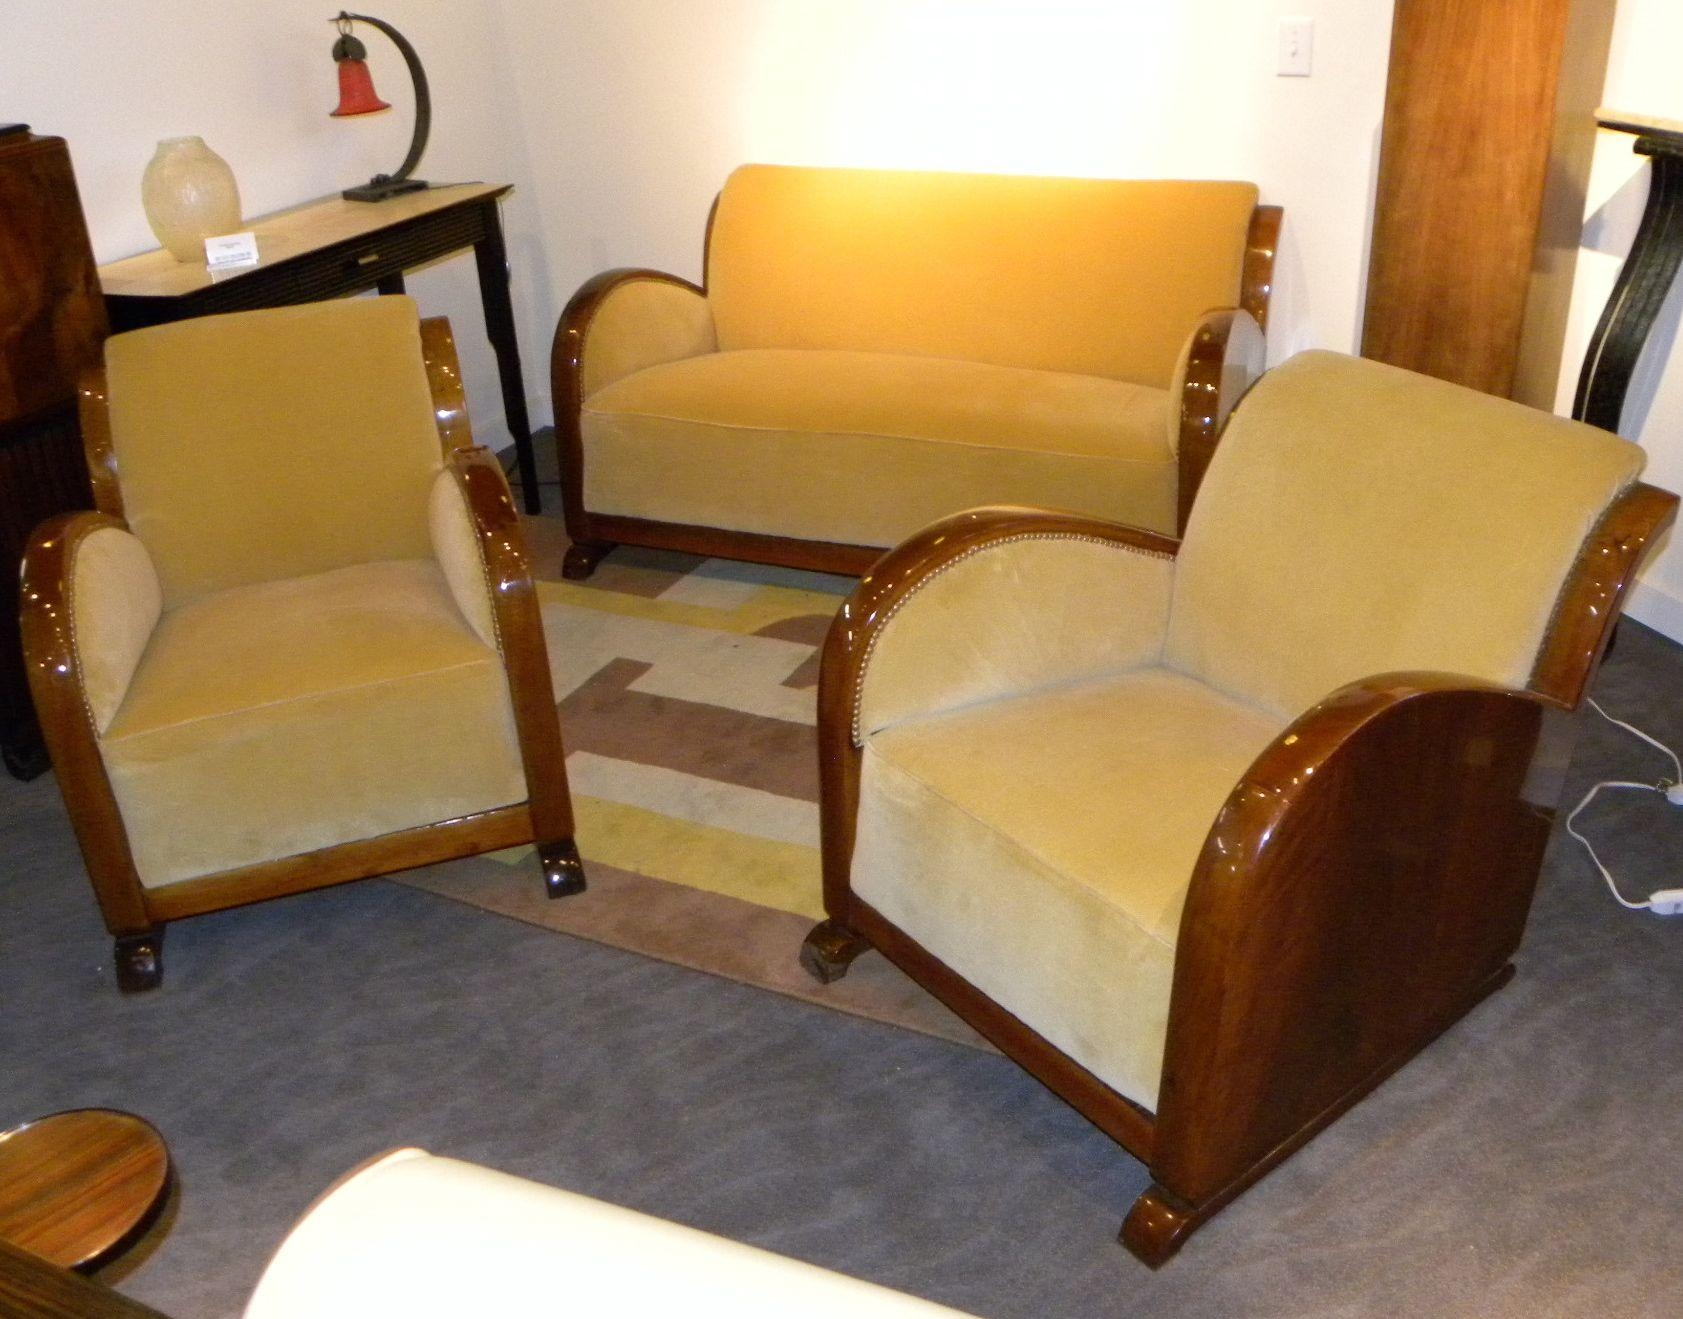 Art Deco Furniture Sold | Seating Items | Art Deco Collection Inside Art Deco Sofa And Chairs (Image 9 of 20)